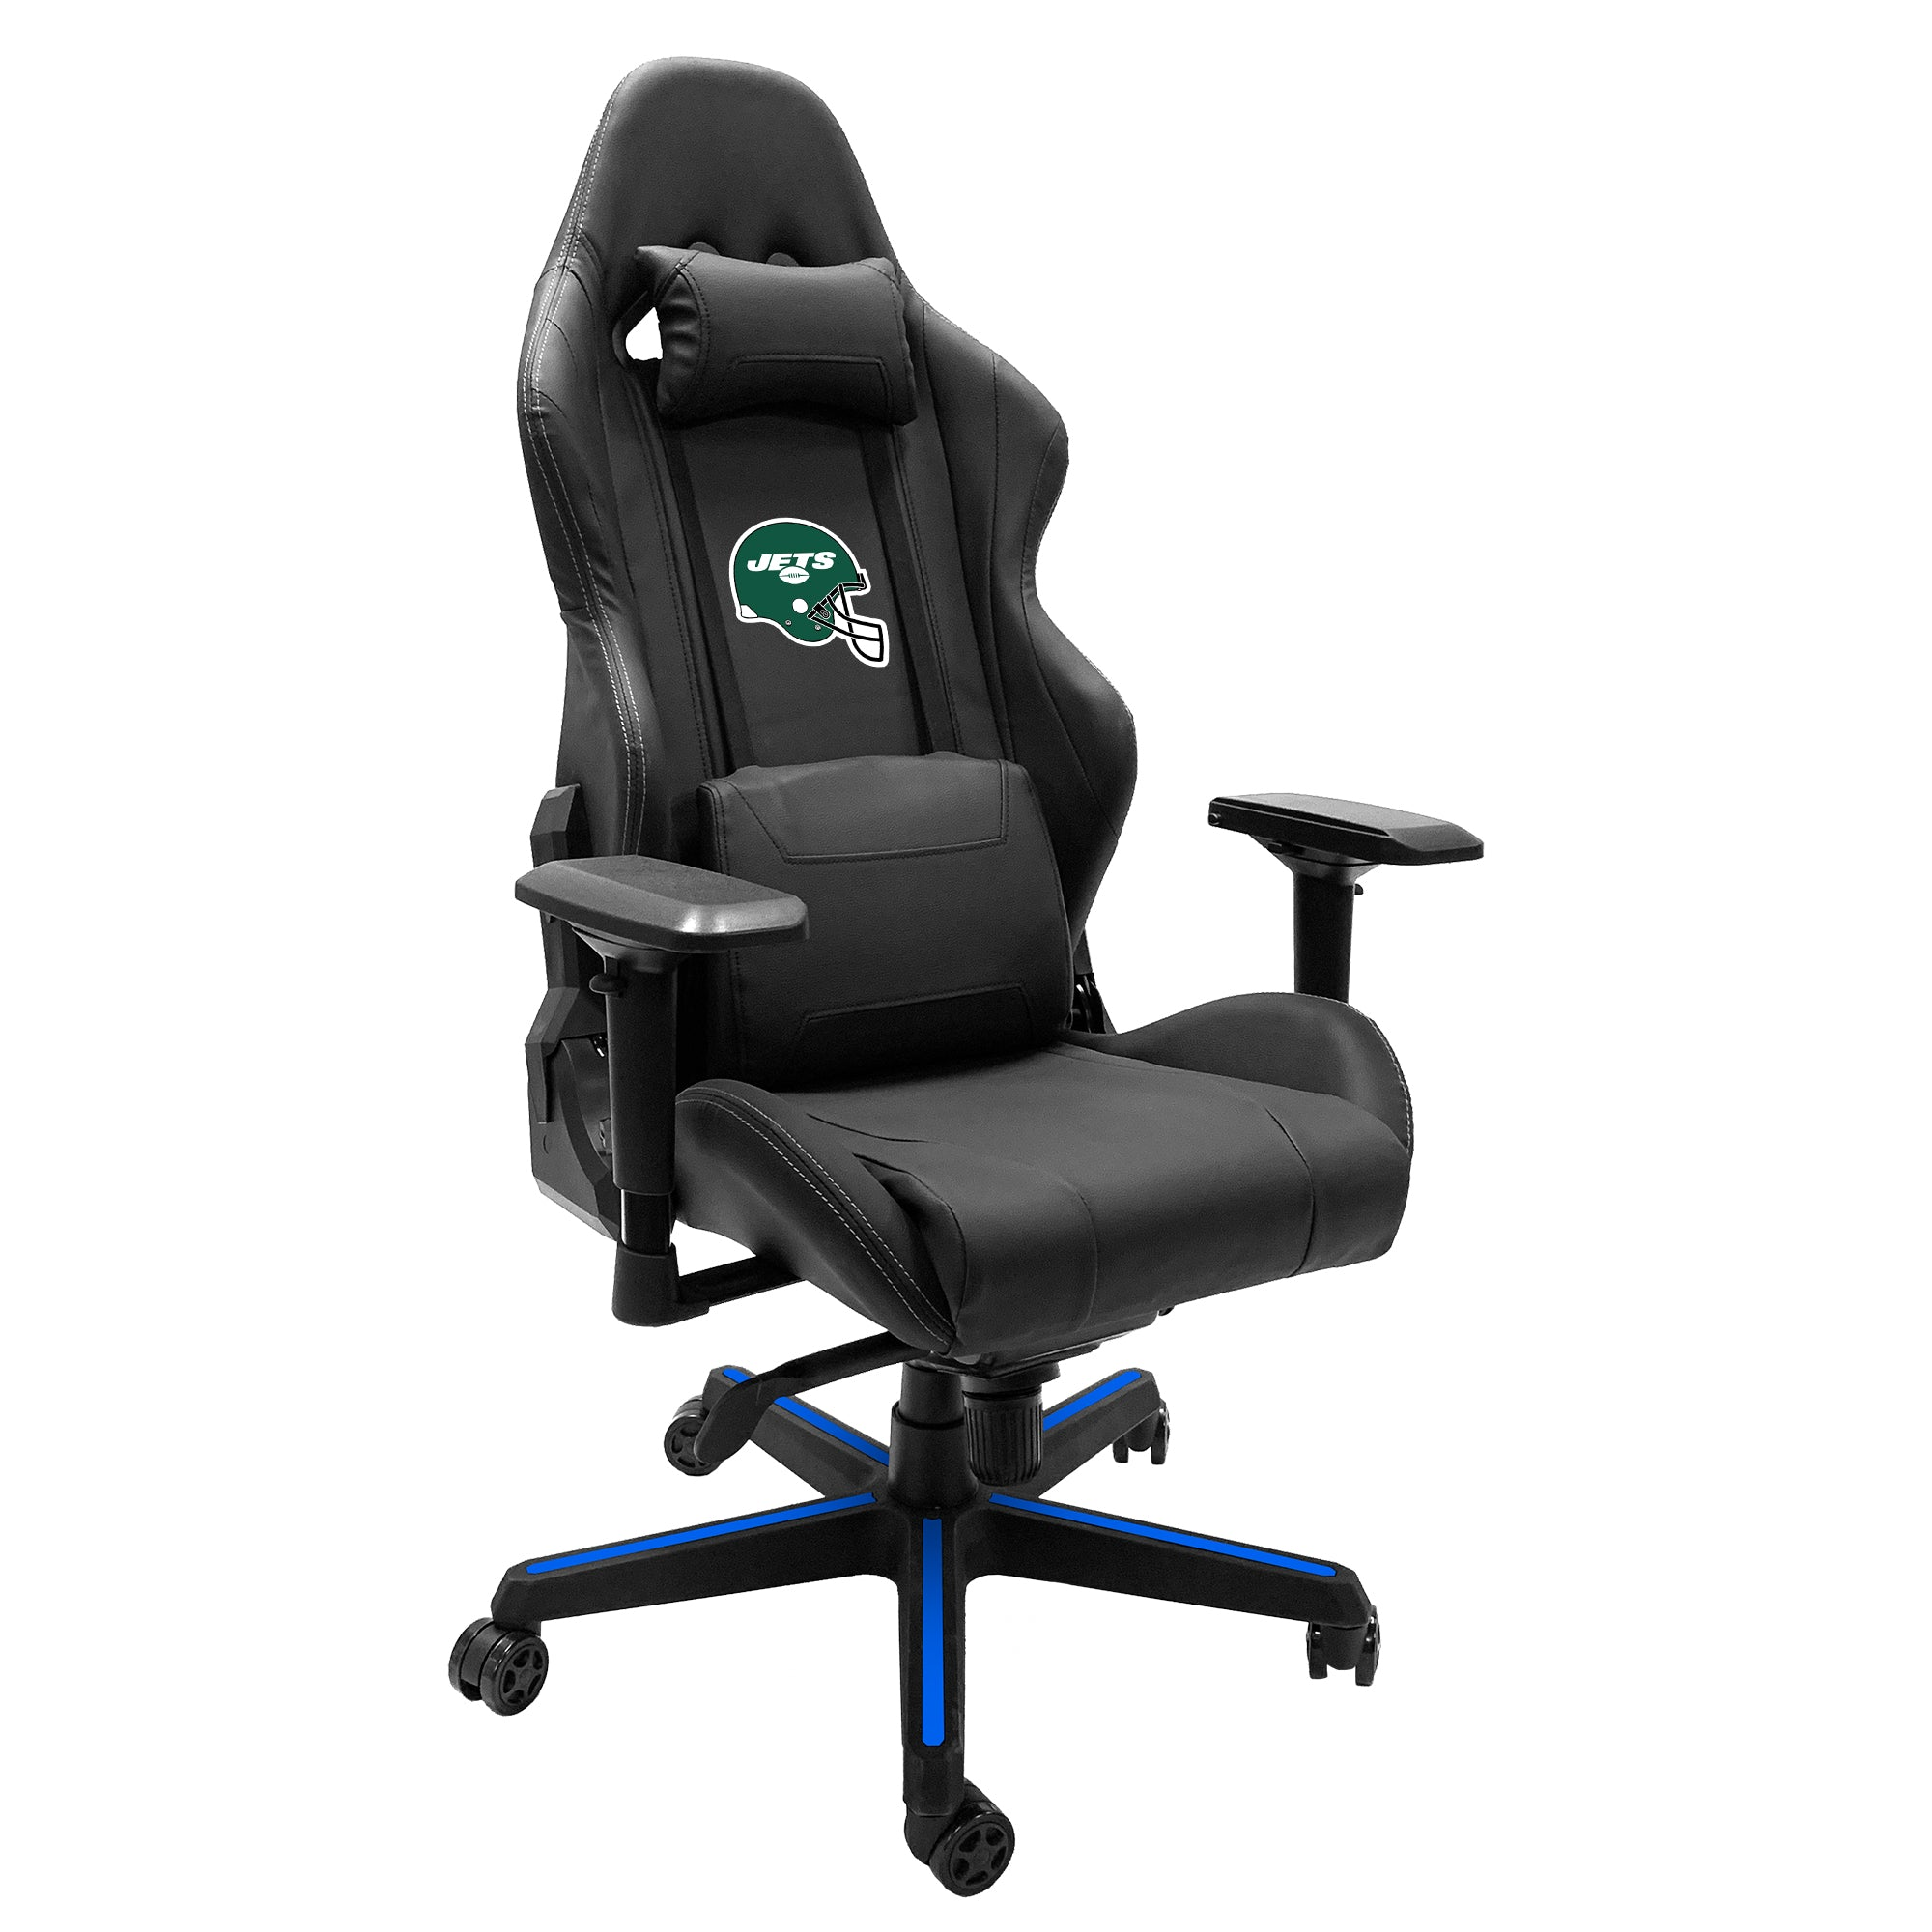 Xpression Gaming Chair with  New York Jets Helmet Logo